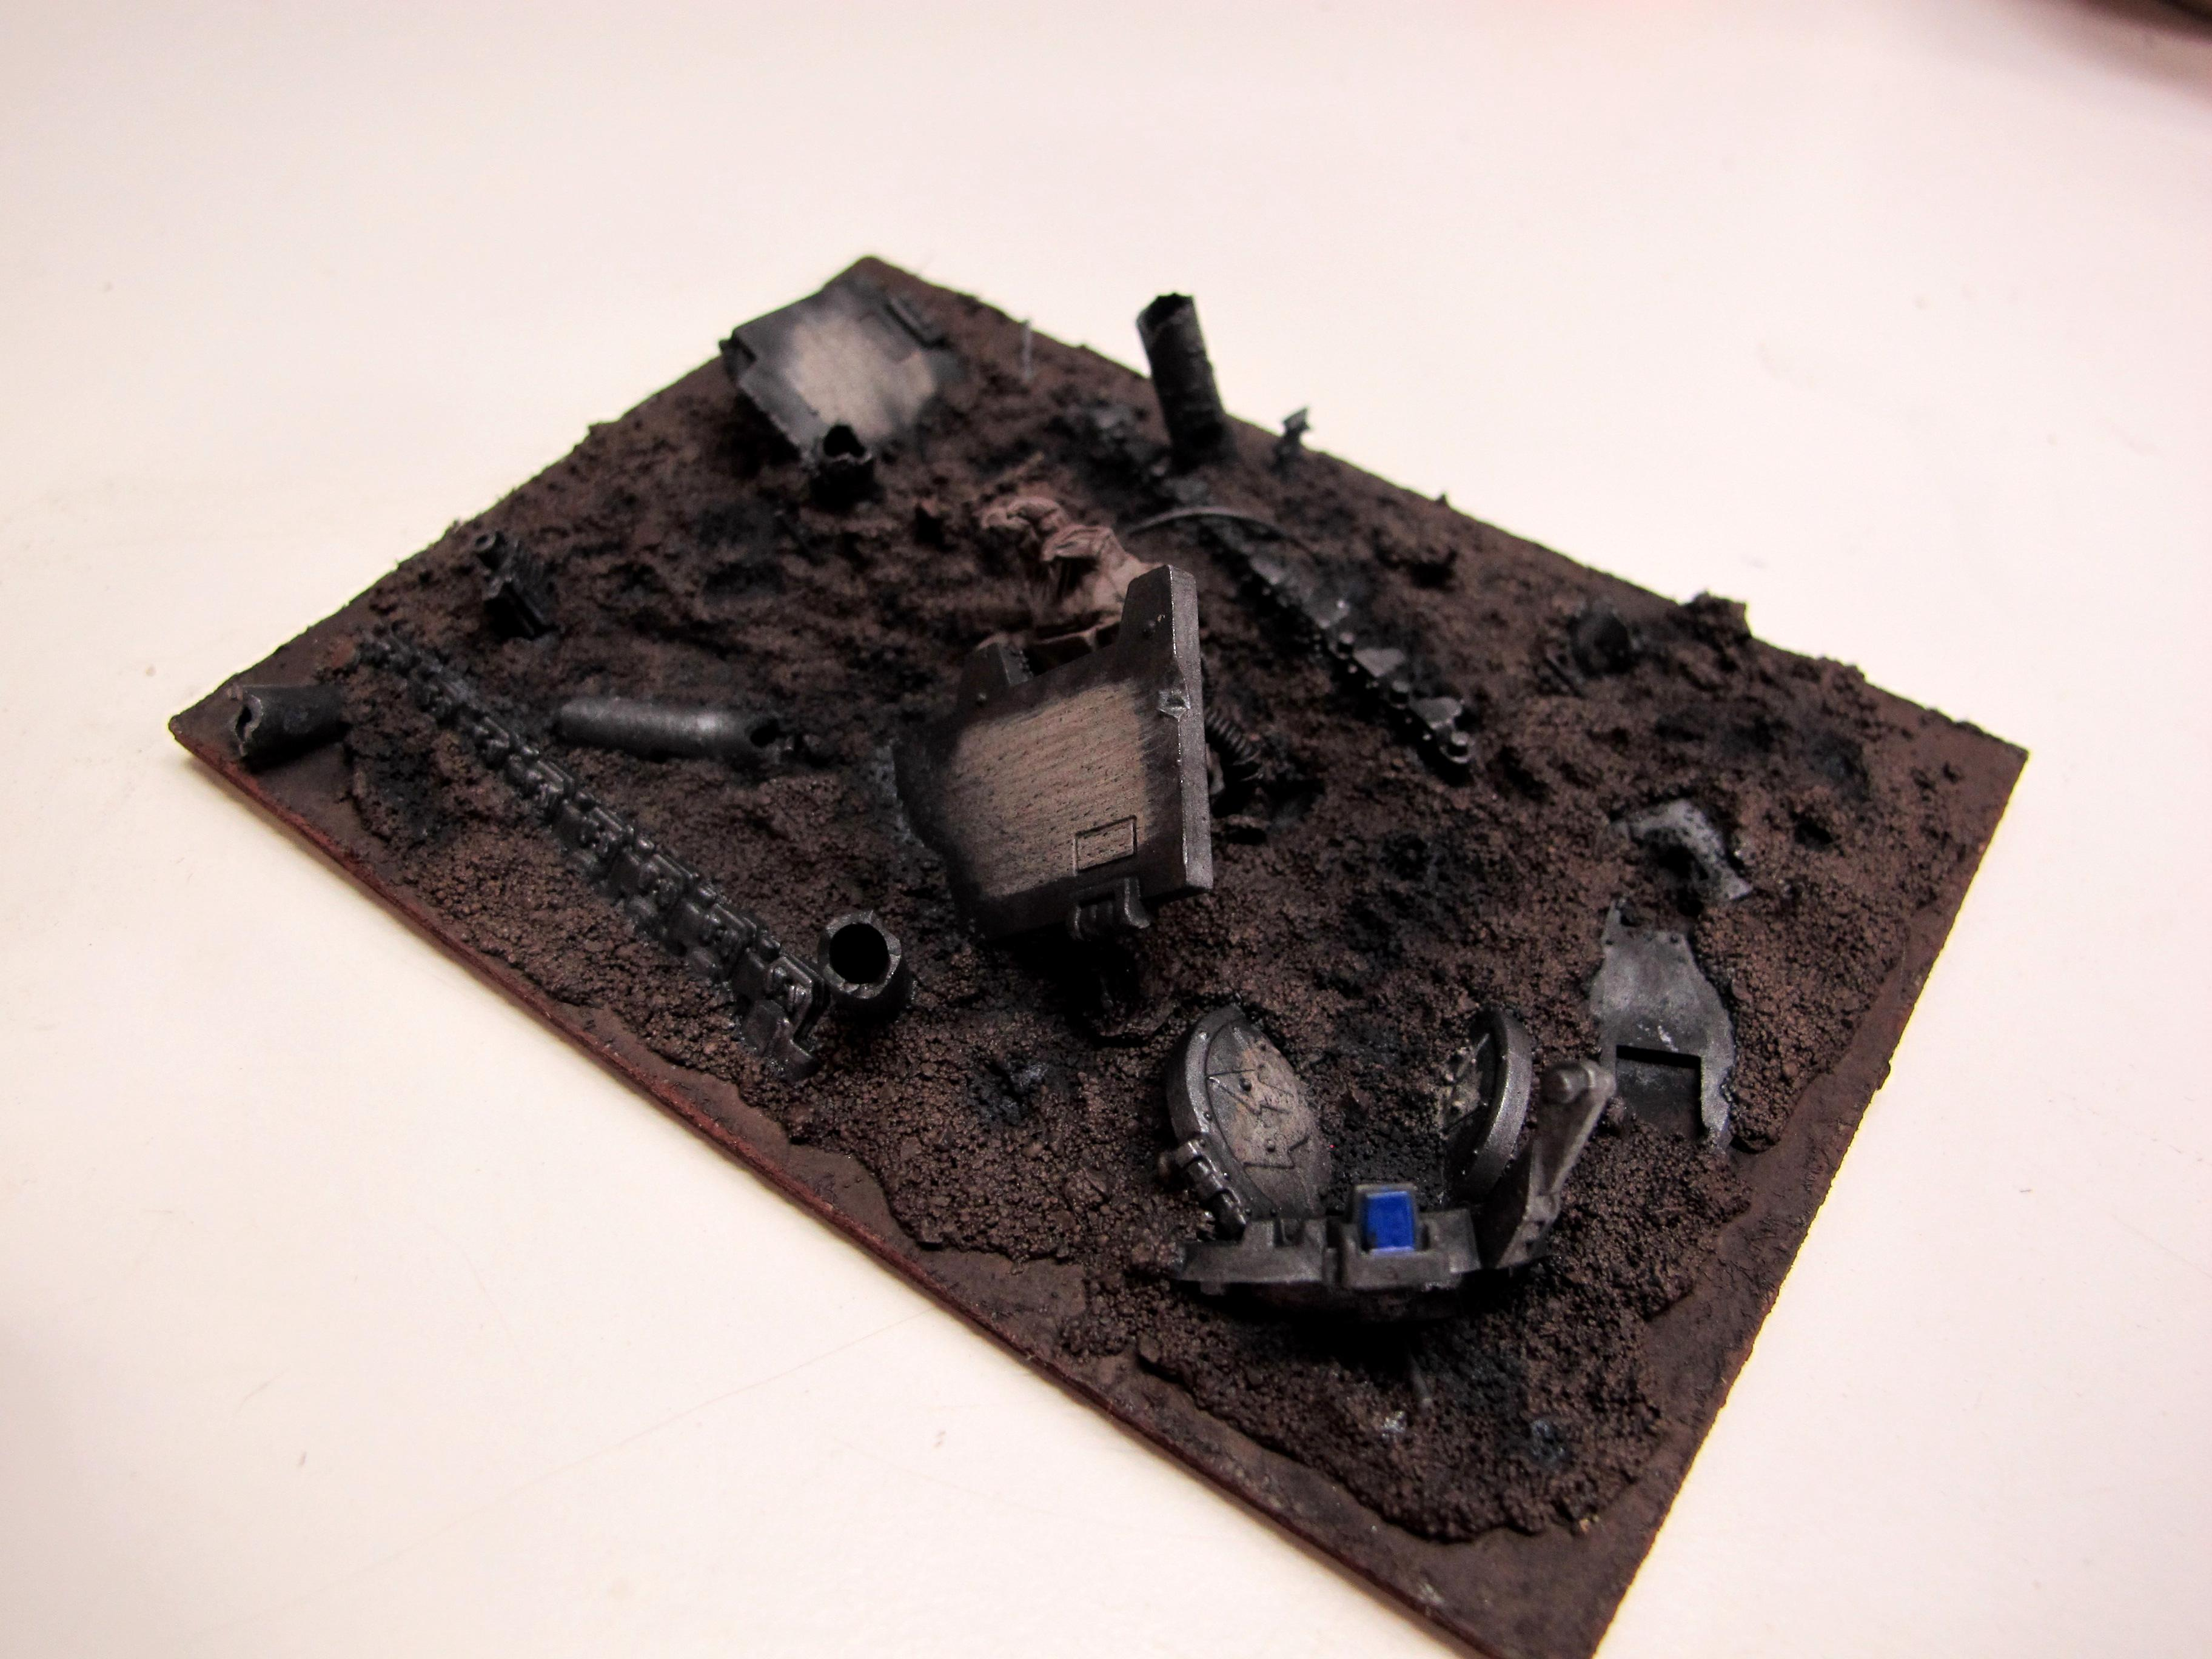 Chaos Space Marines, Crater, Death Guard, Destroyed, Markers, Nurgle, Plague Marines, Ruins, Template, Vehicle, Vehicle Markers